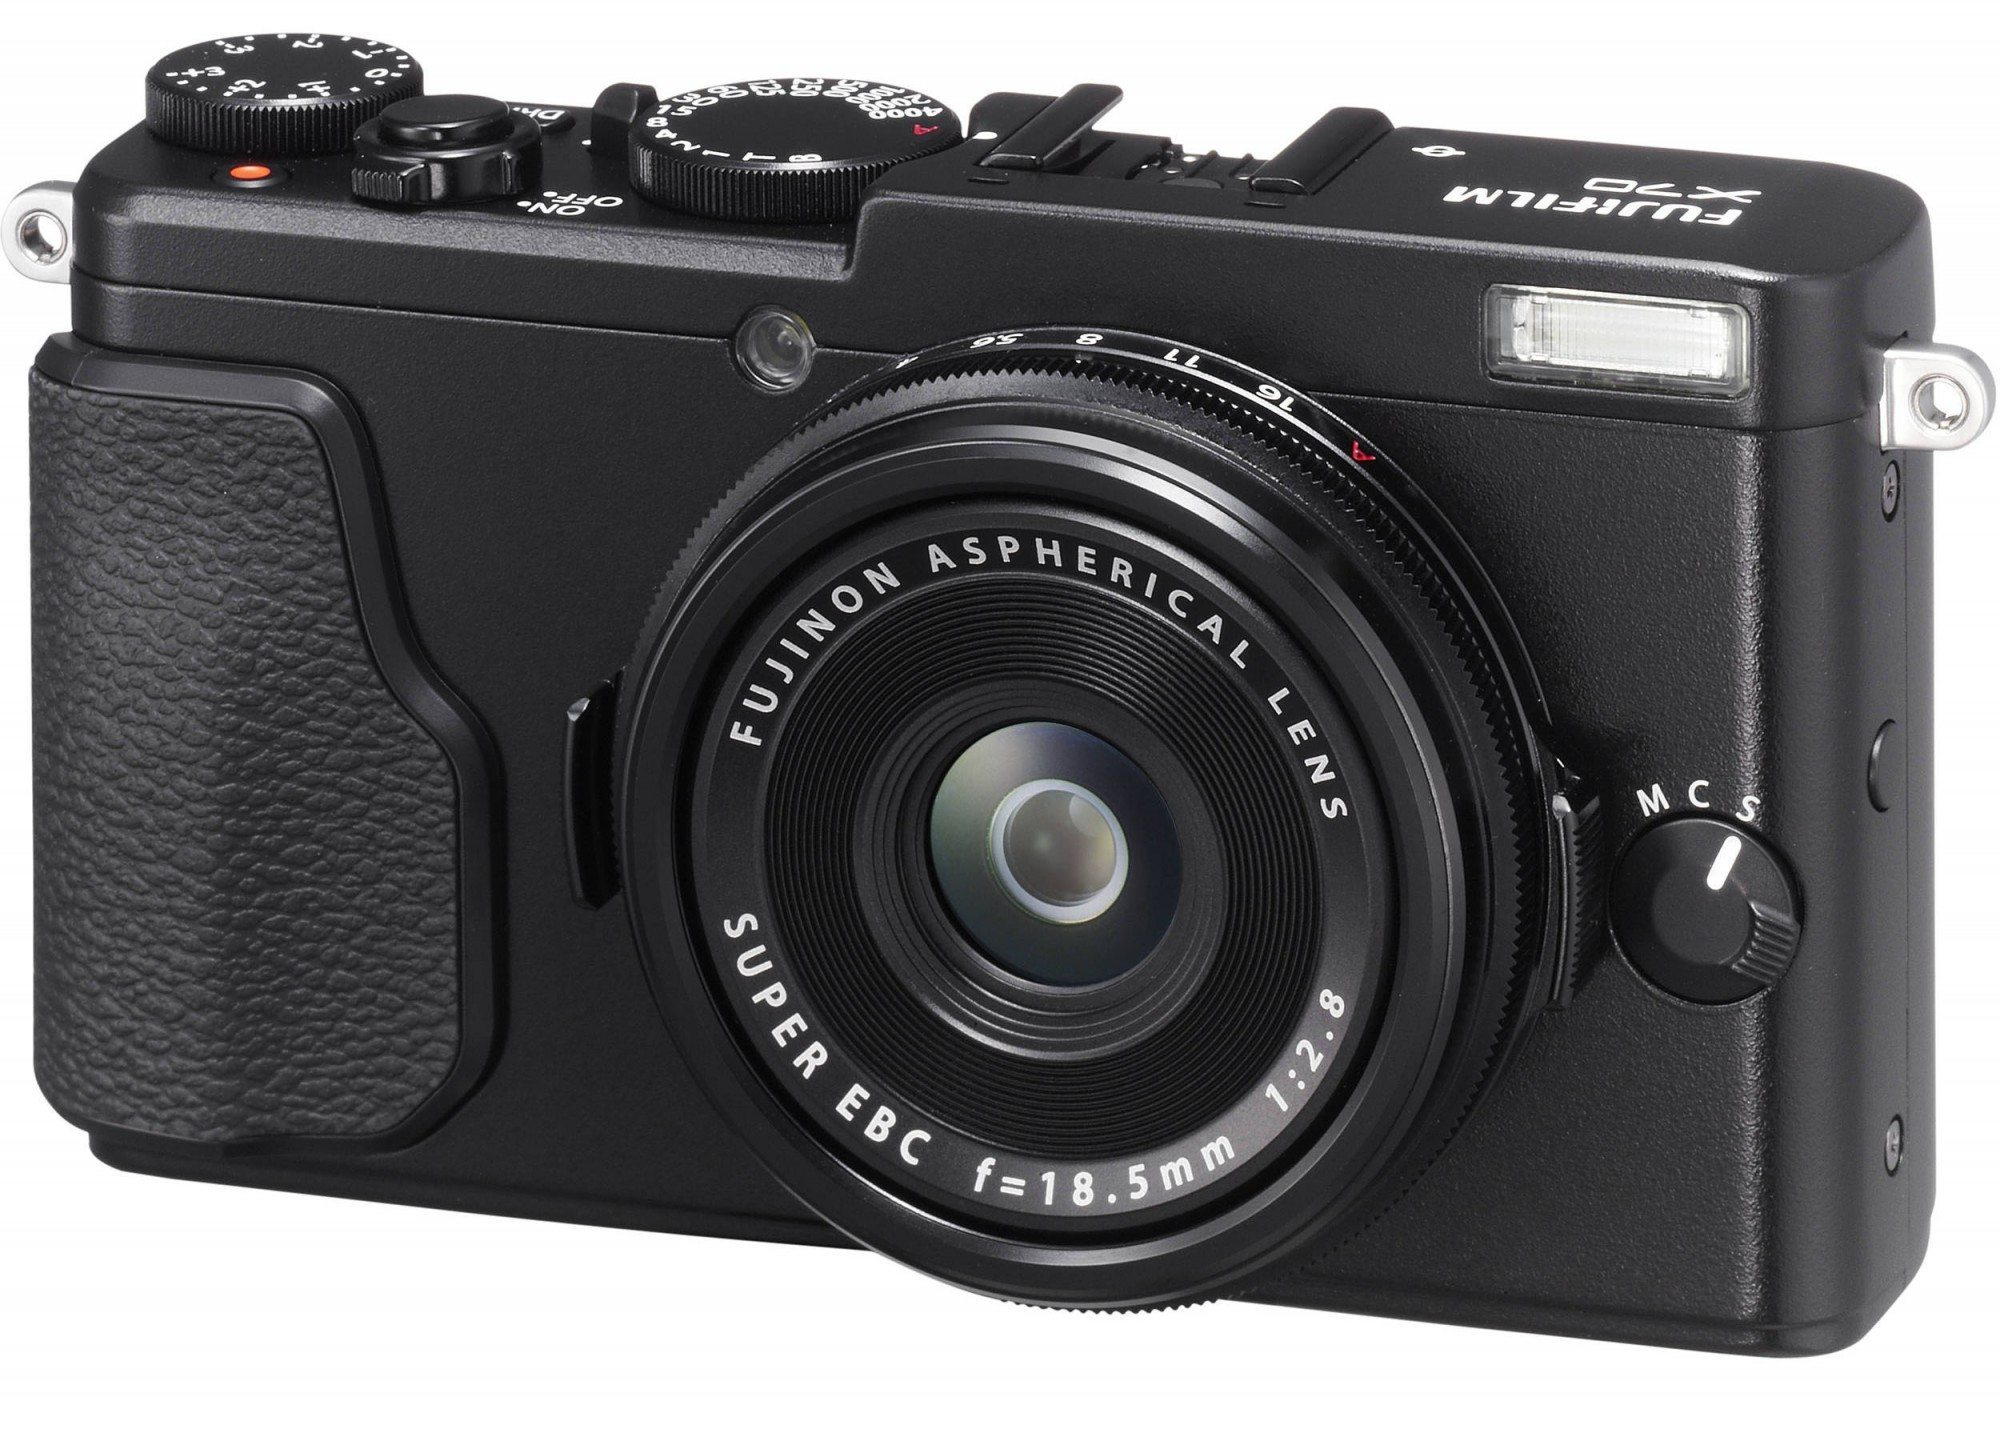 The new Fujifilm X70: the body of a Ricoh GR with the guts of a Fujifilm X100T